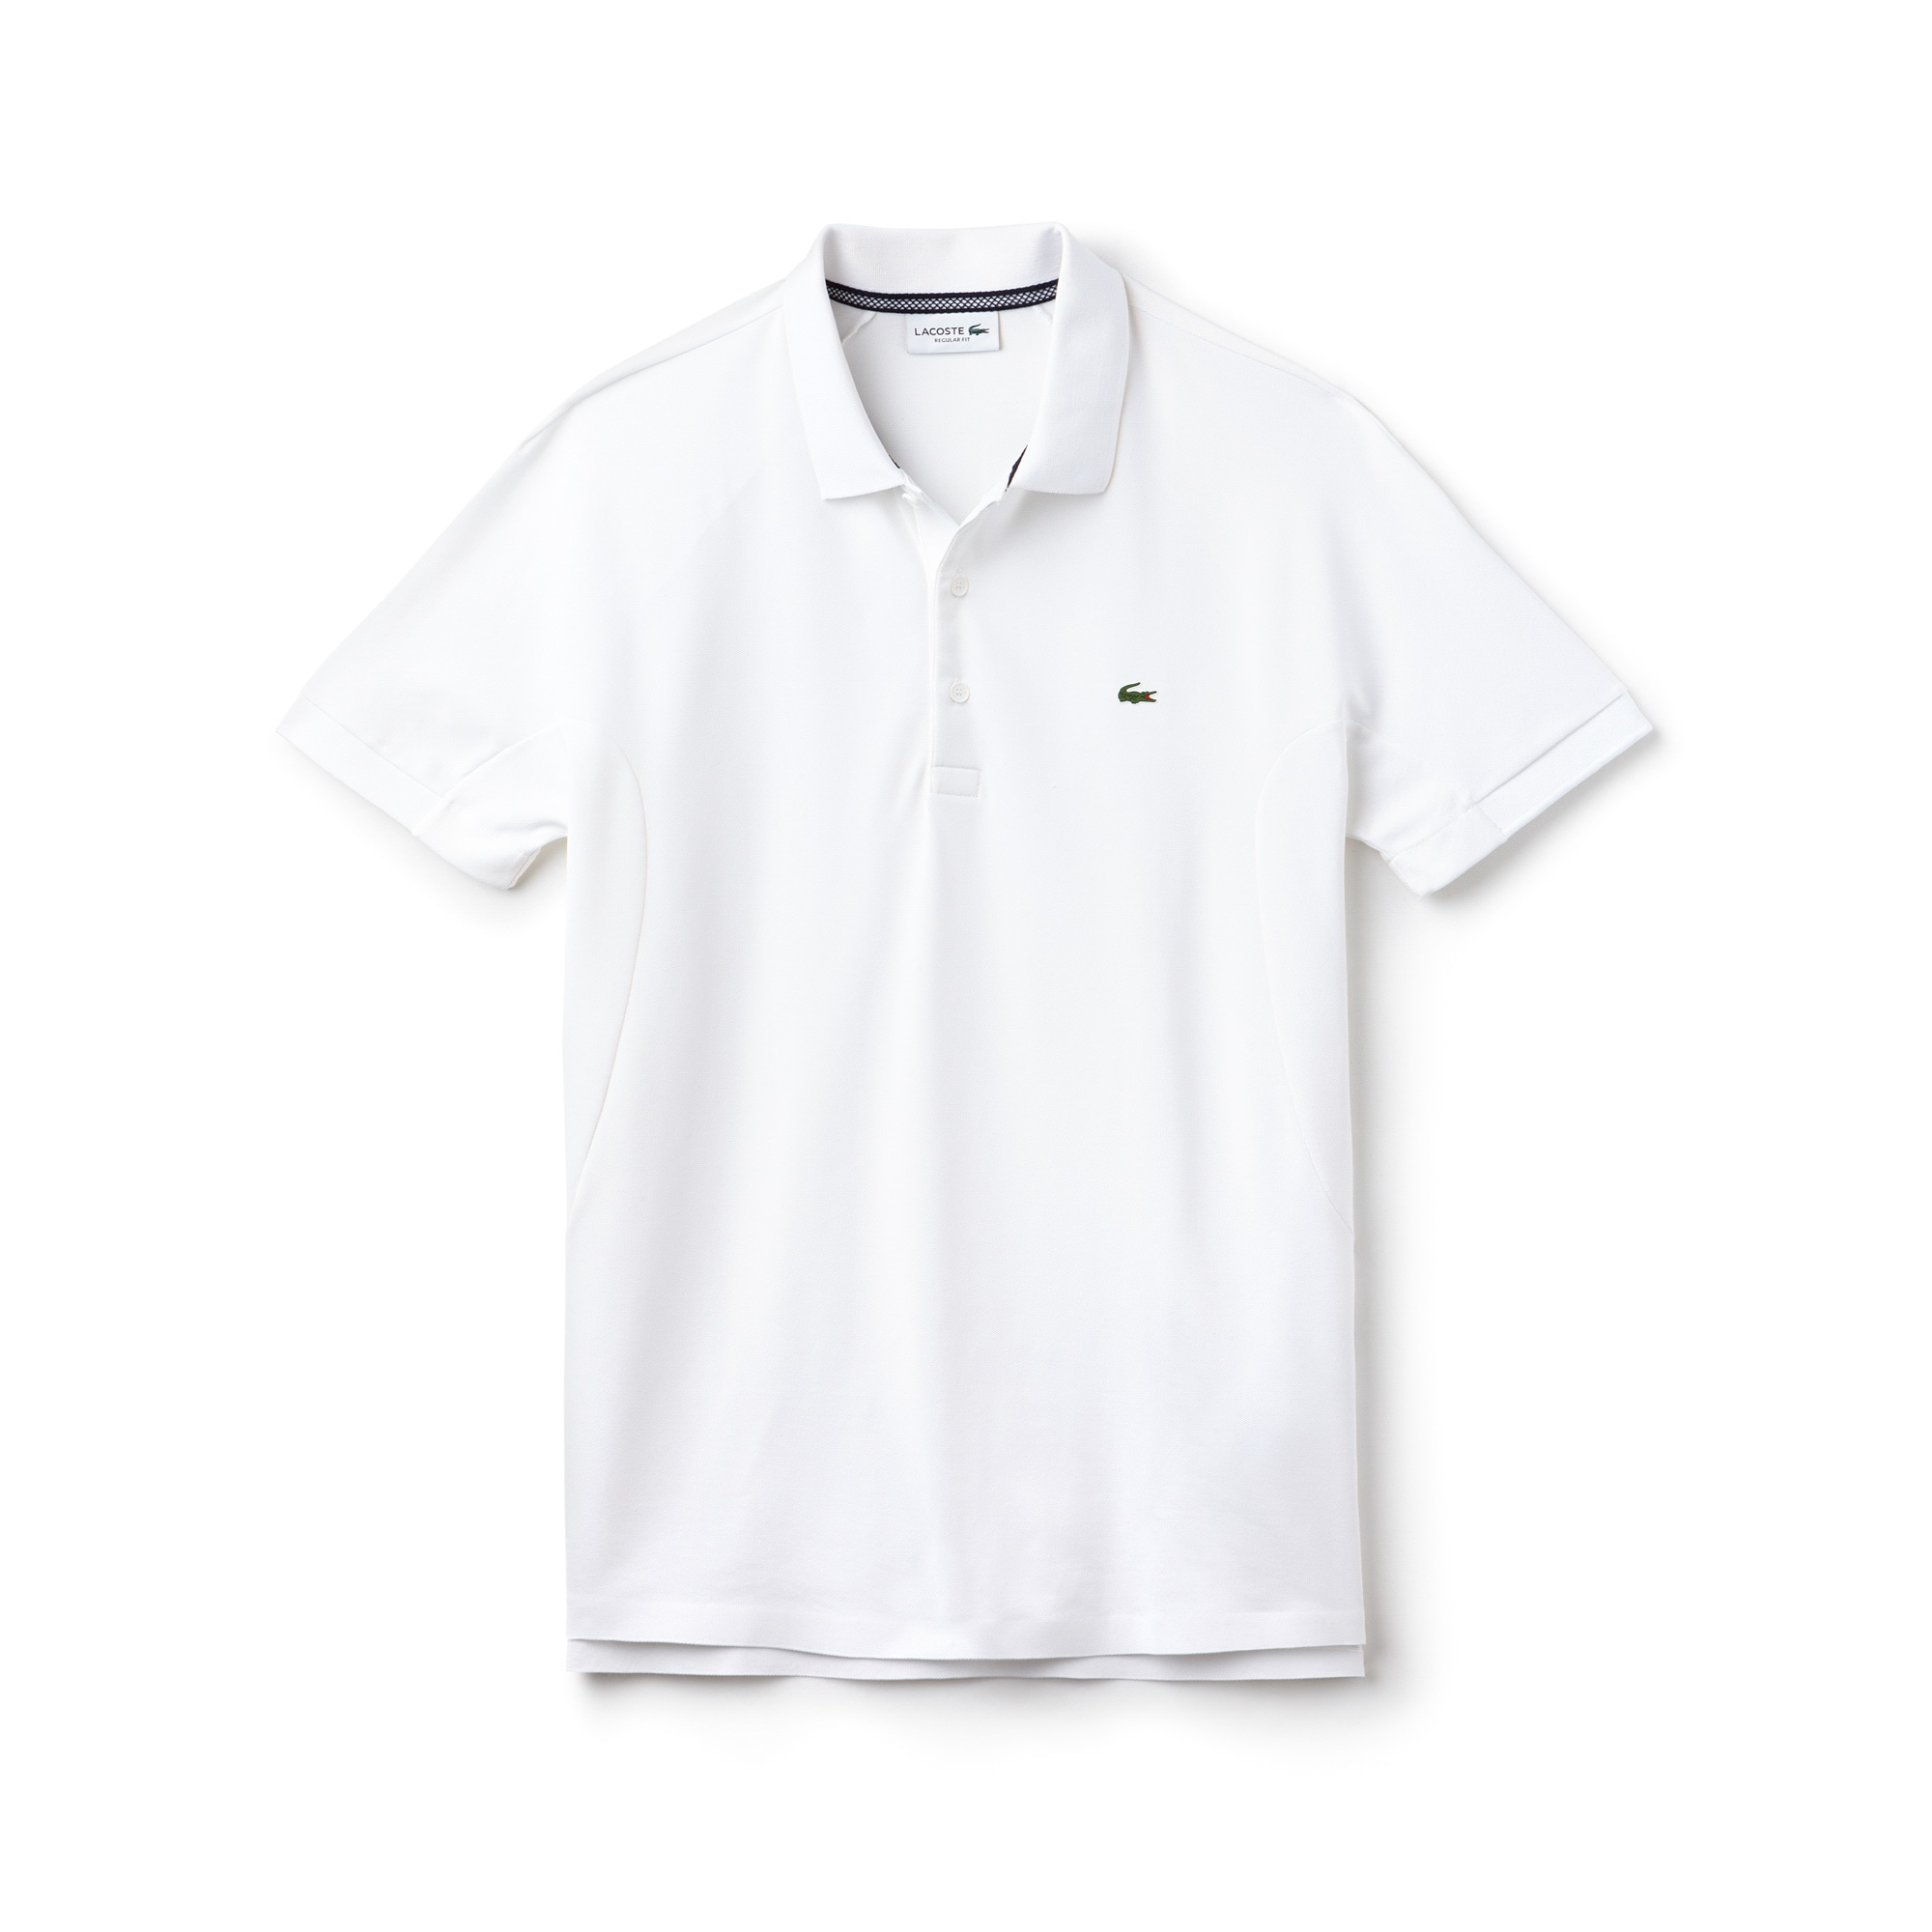 Herren LACOSTE 85th Anniversary Limited Edition Poloshirt